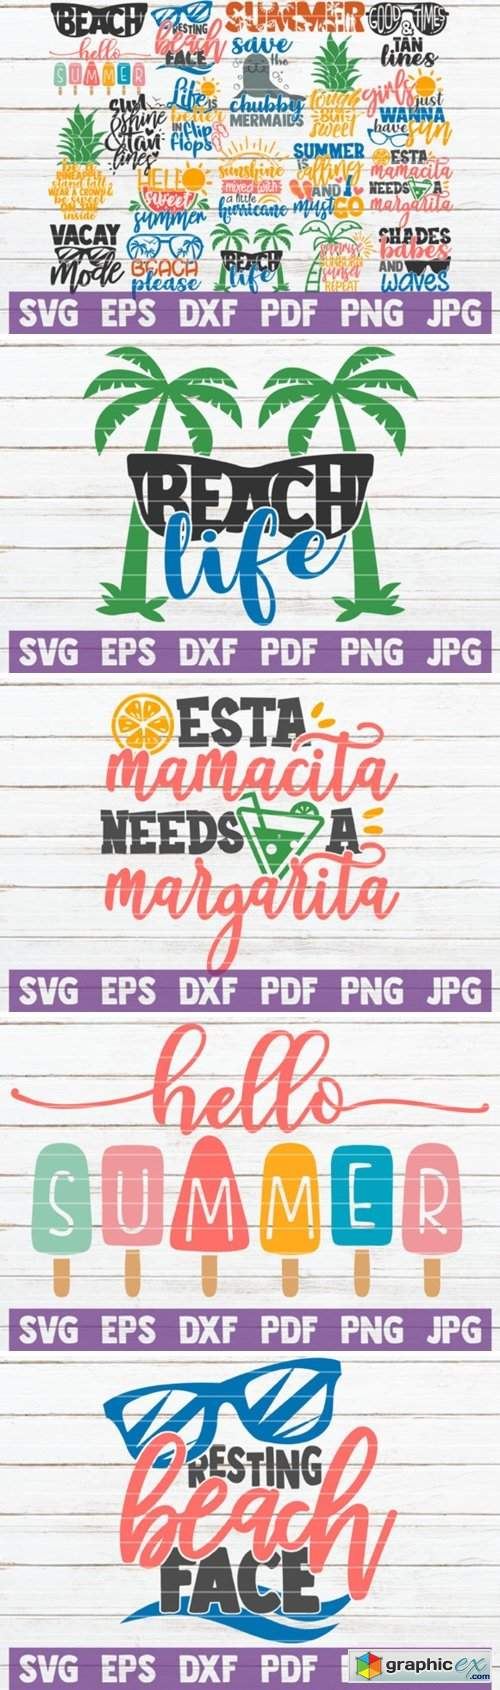 Summertime SVG Bundle | Beach Life SVG